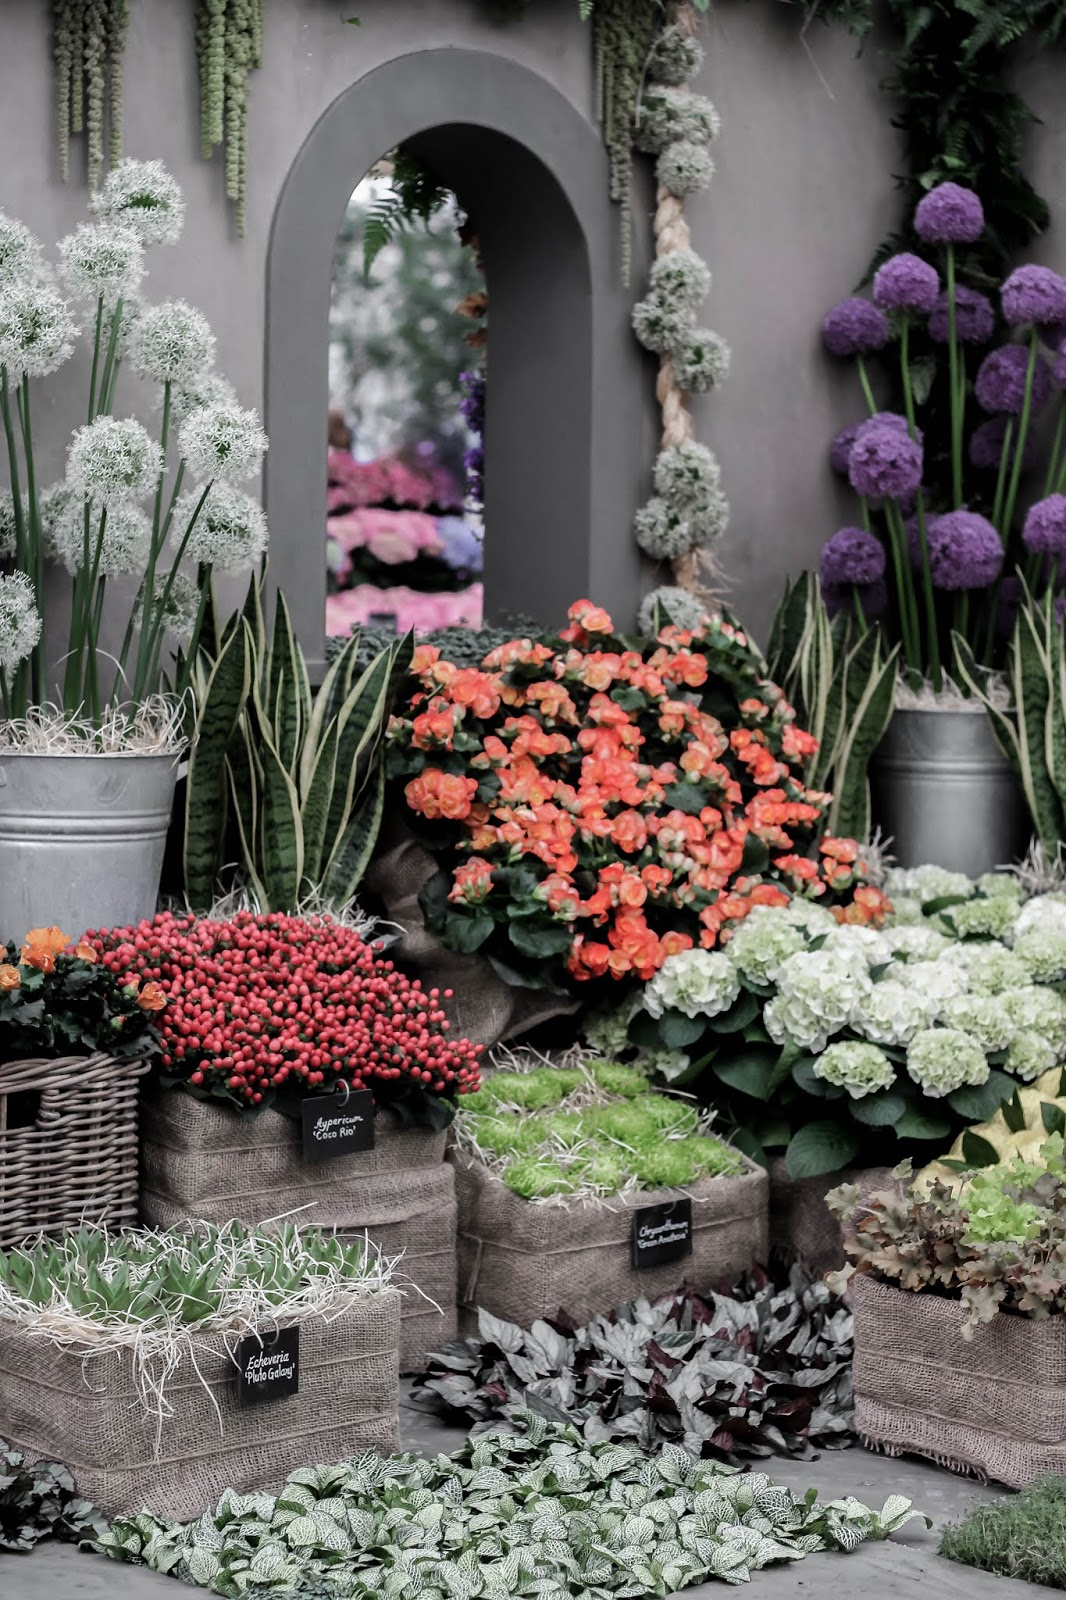 Best Exhibits at Chelsea Flower Show 2018 Marks & Spencer